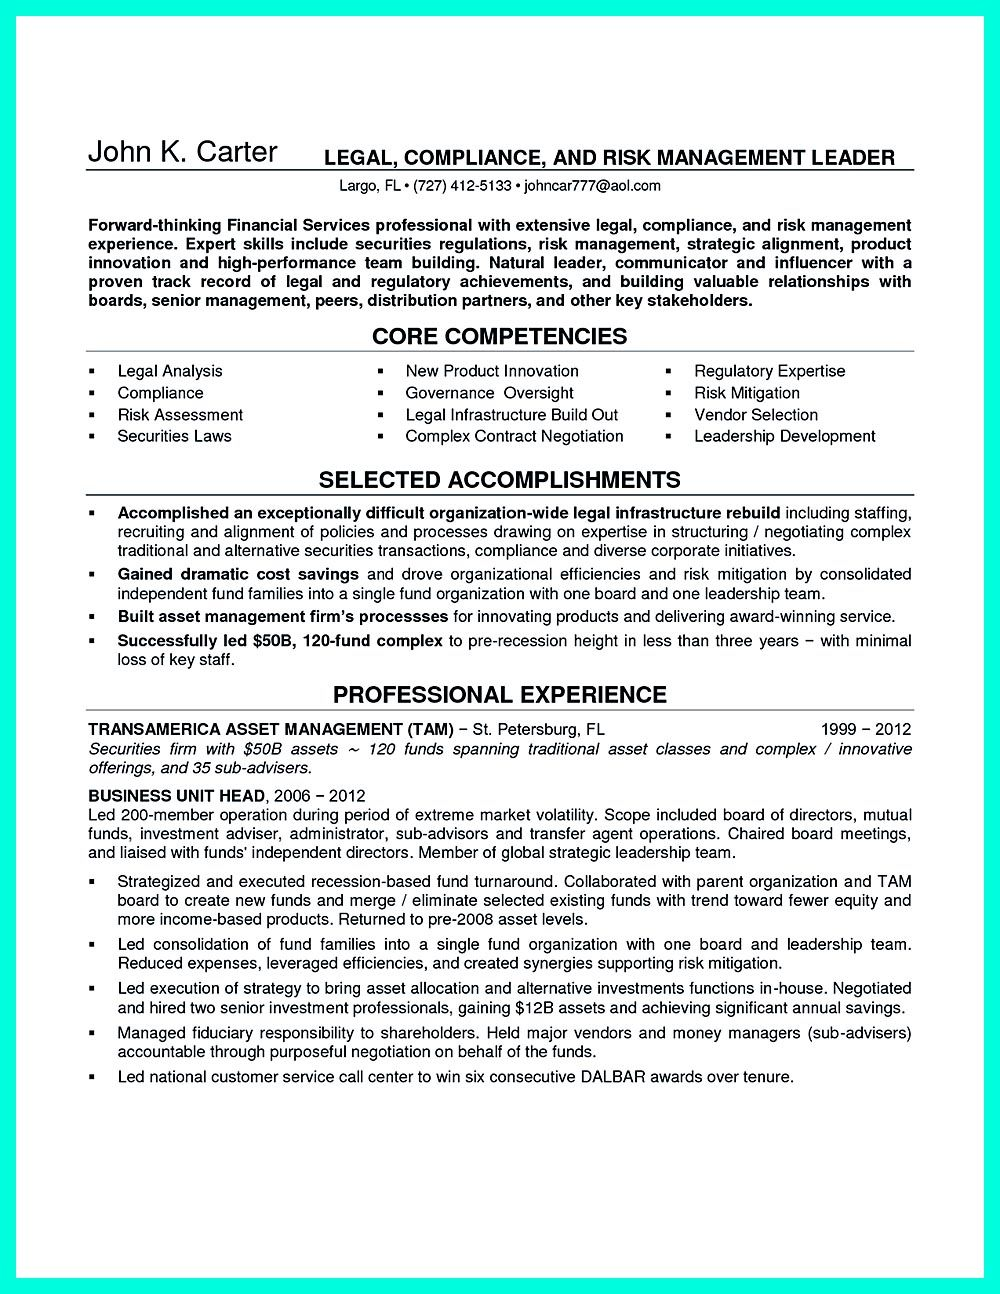 Compliance Officer Resume Is Well Designed To Get The Attention Of The Hiring Manager The Resume Here Begins With The T Resume Risk Management Resume Examples